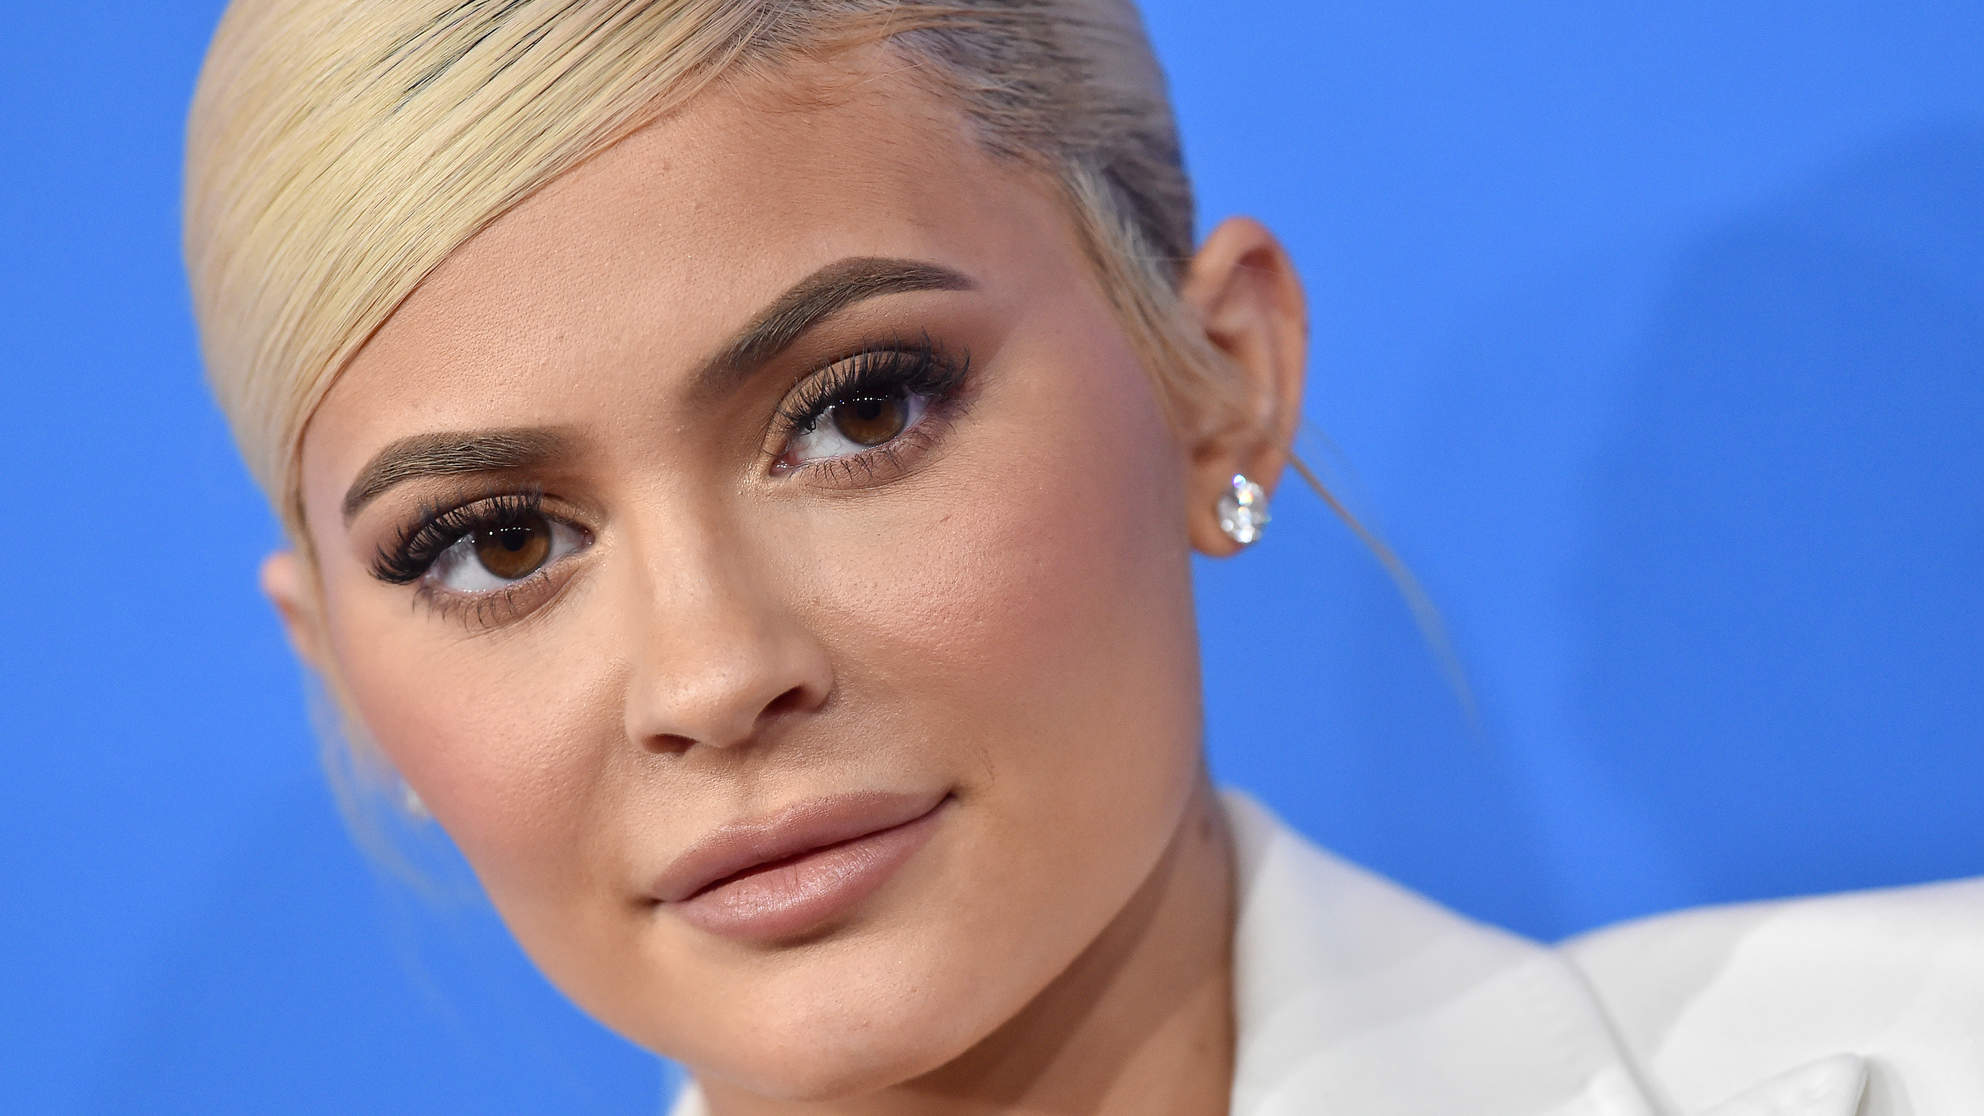 Kylie Jenner Says She's 'Never' Had Plastic Surgery, But Has Done Fillers: 'I'm Not Denying That'